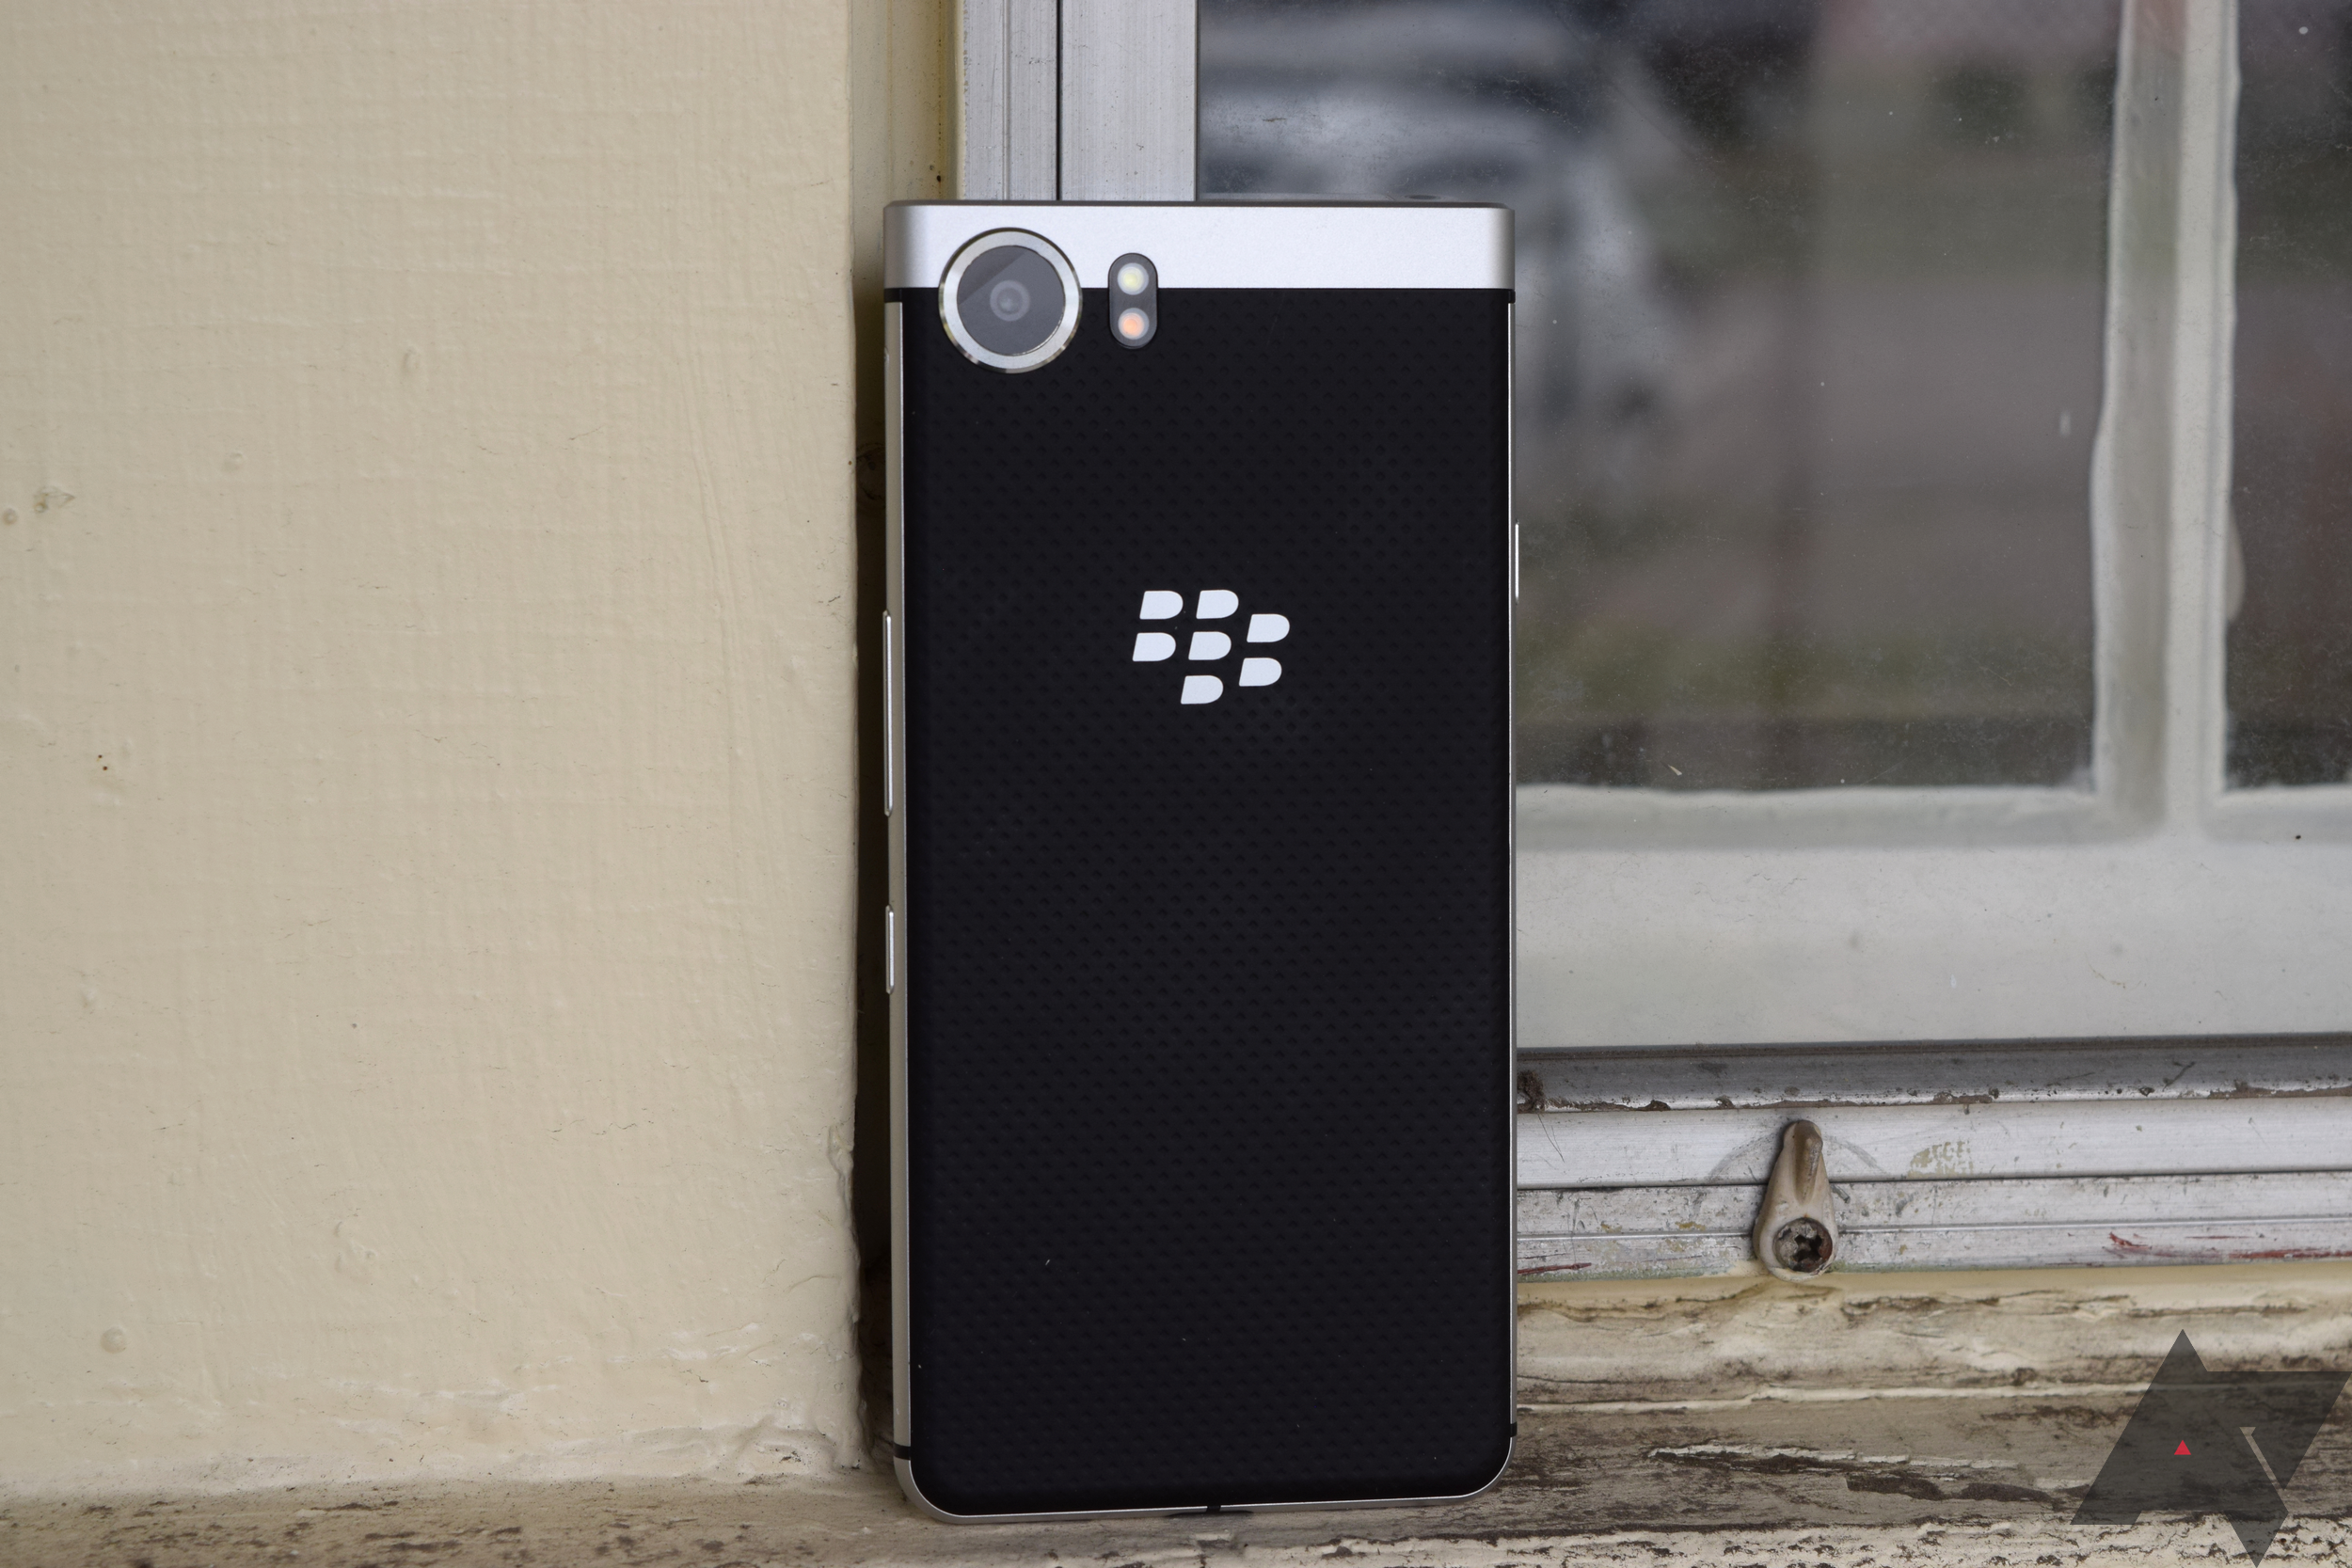 BlackBerry alleges Facebook, WhatsApp, and Instagram are